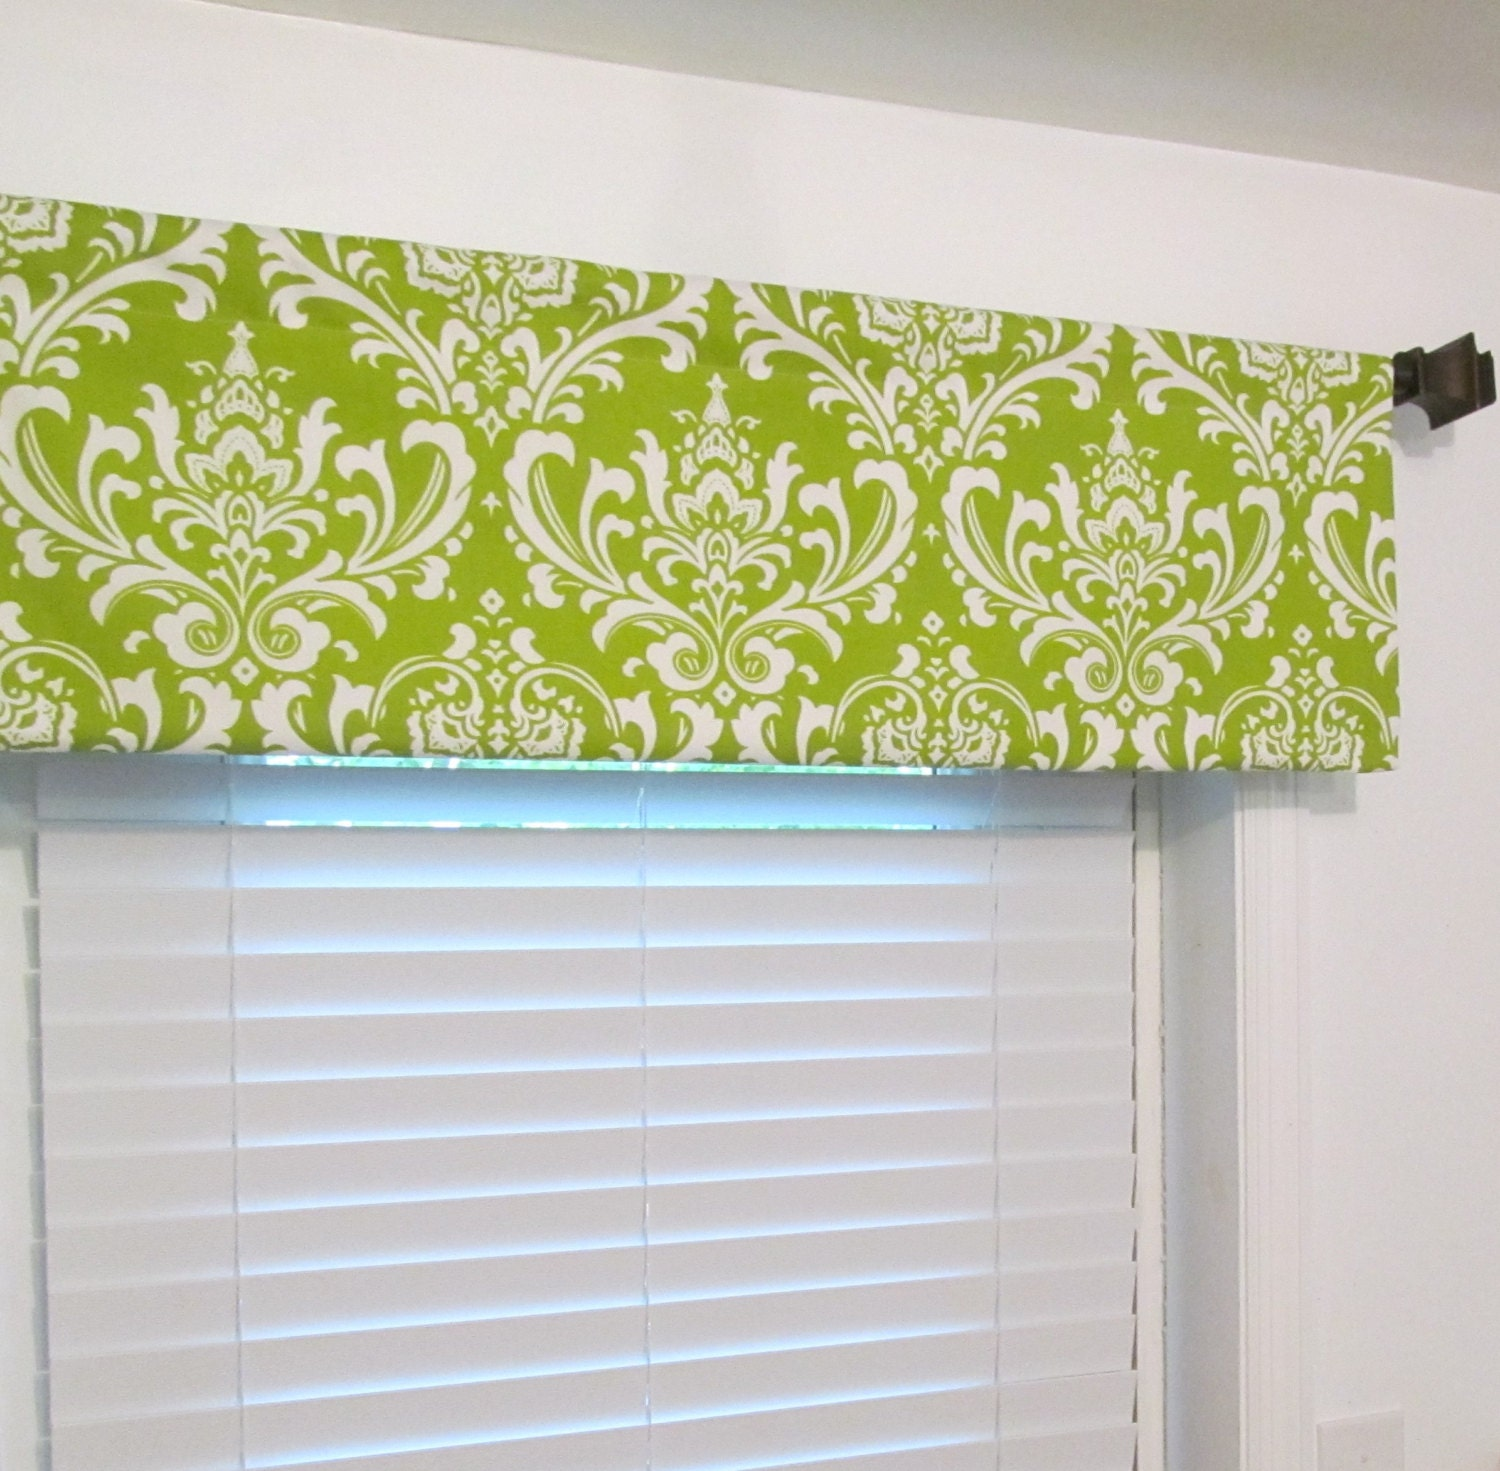 Chartreuse White Damask Valance Rod Pocket Curtain By Oldstation